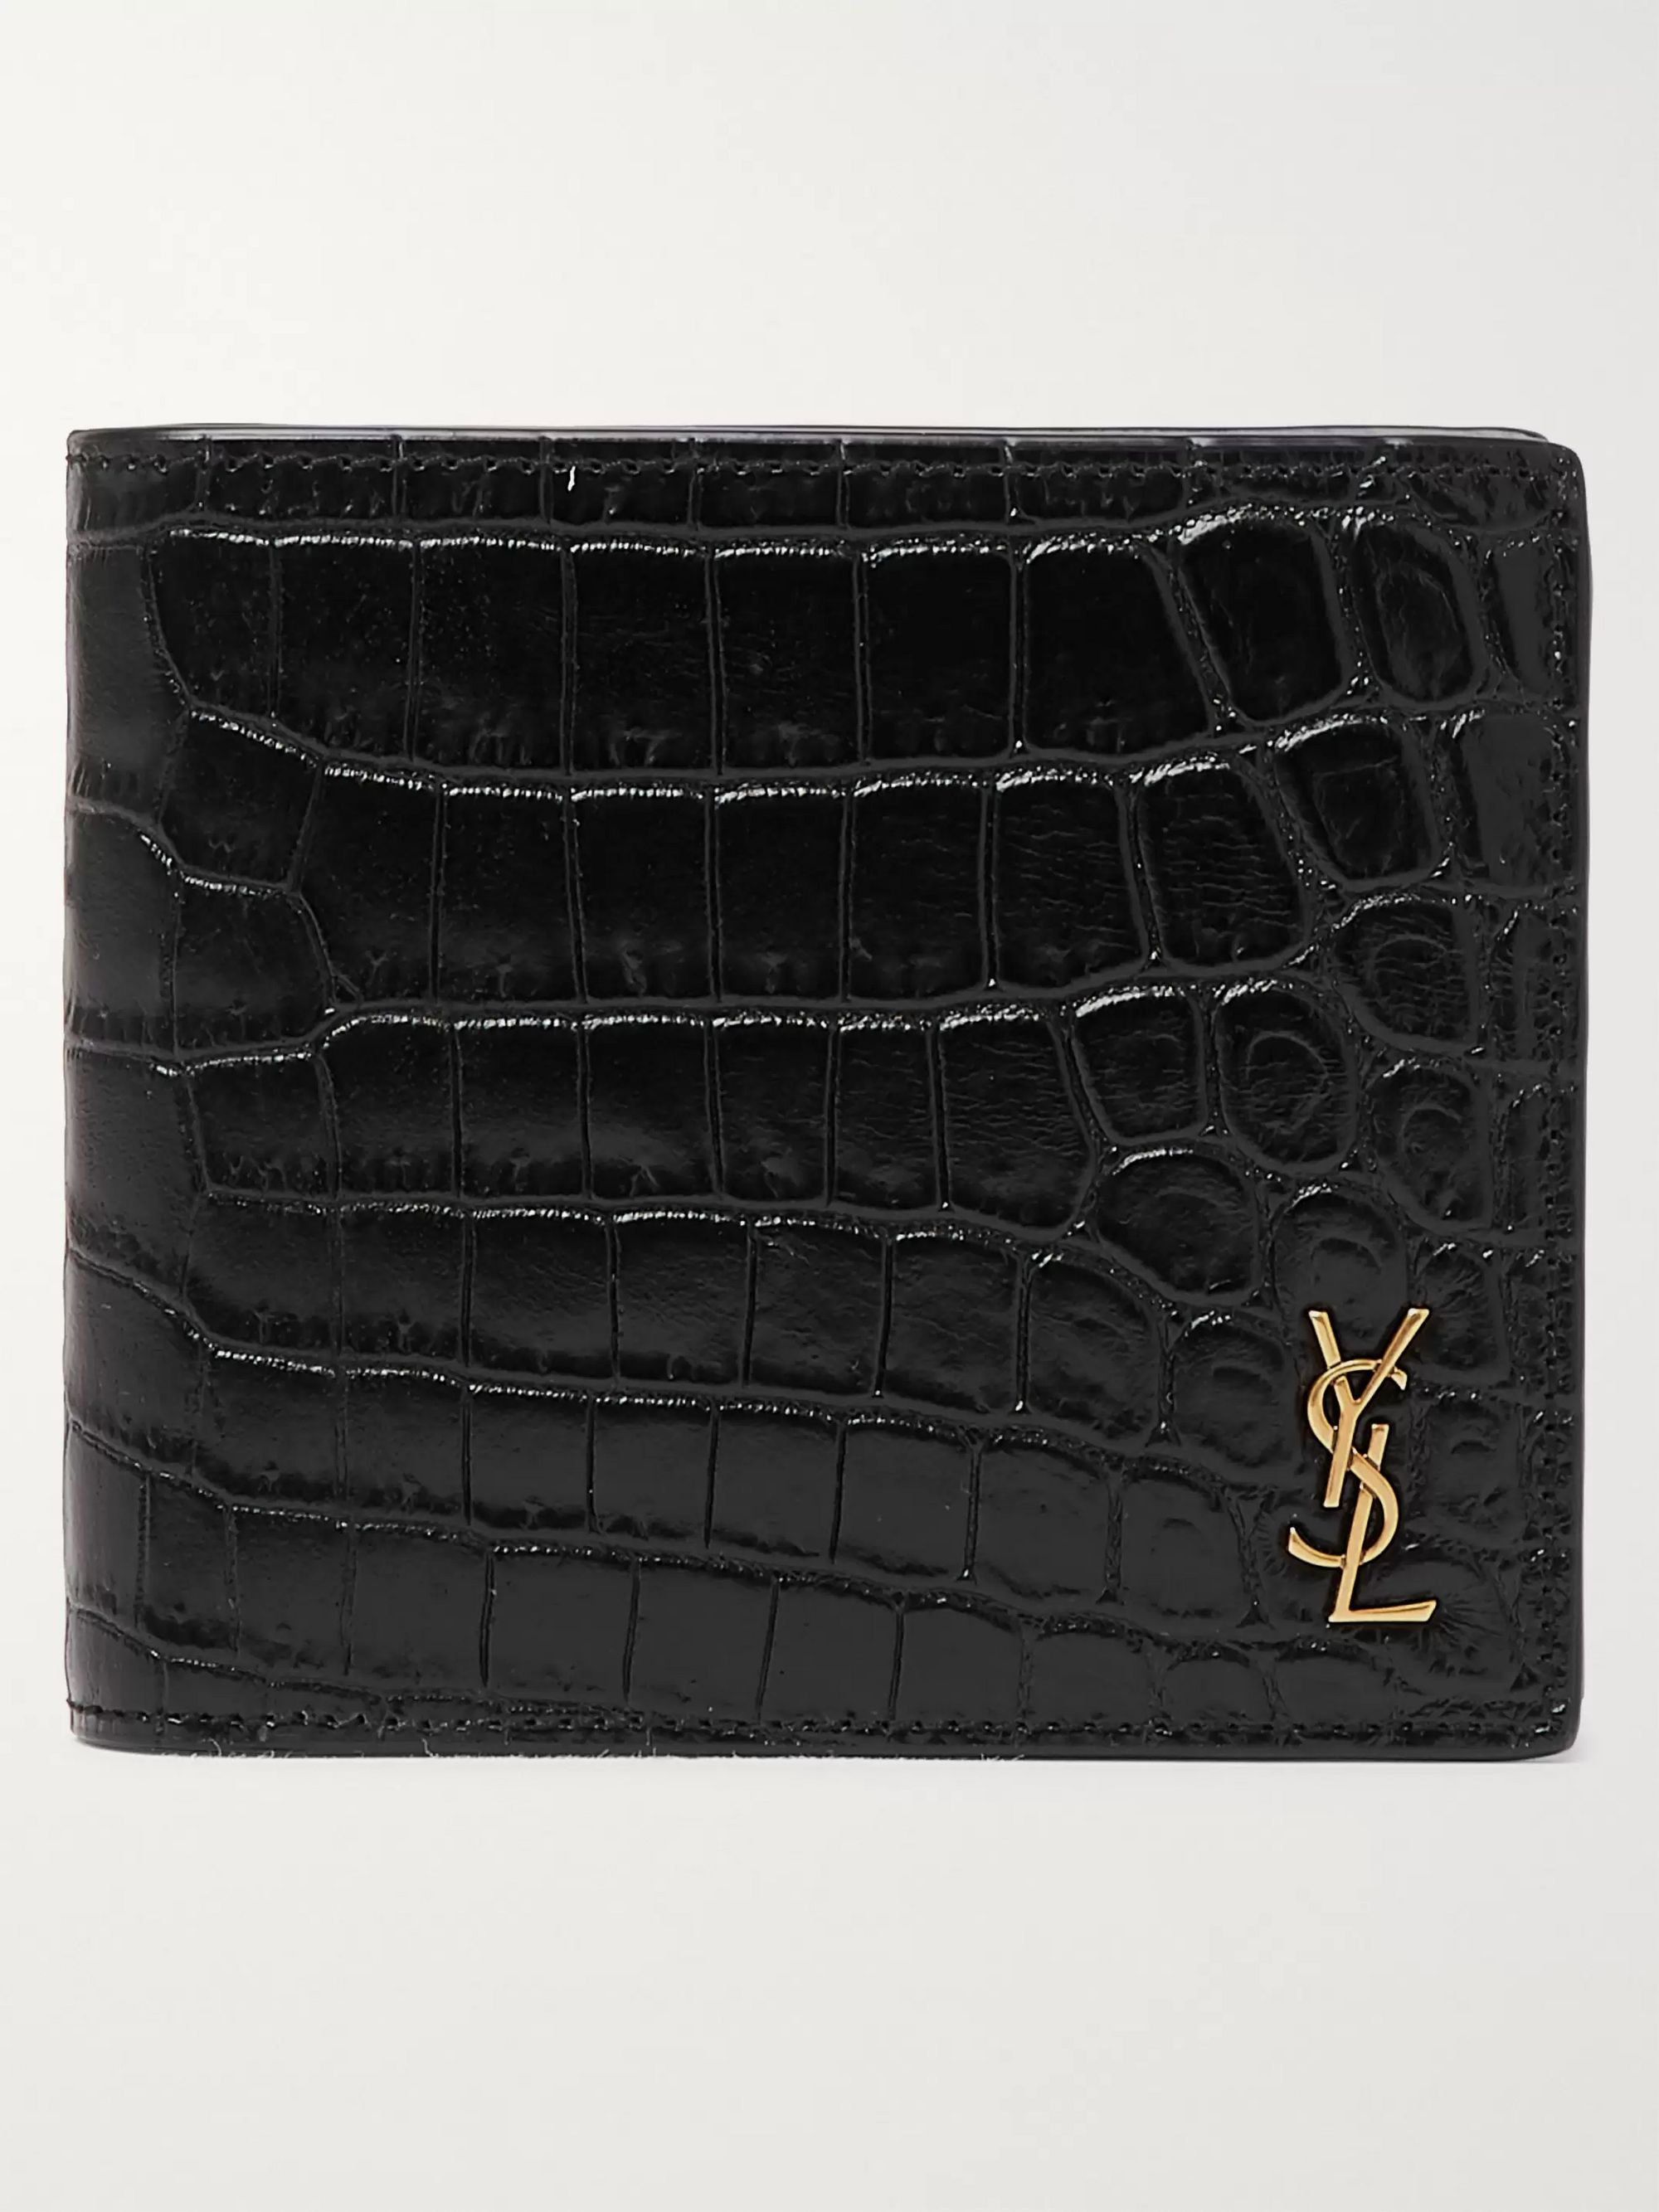 생 로랑 반지갑 Saint Laurent Logo-Appliqued Croc-Effect Patent-Leather Billfold Wallet,Black